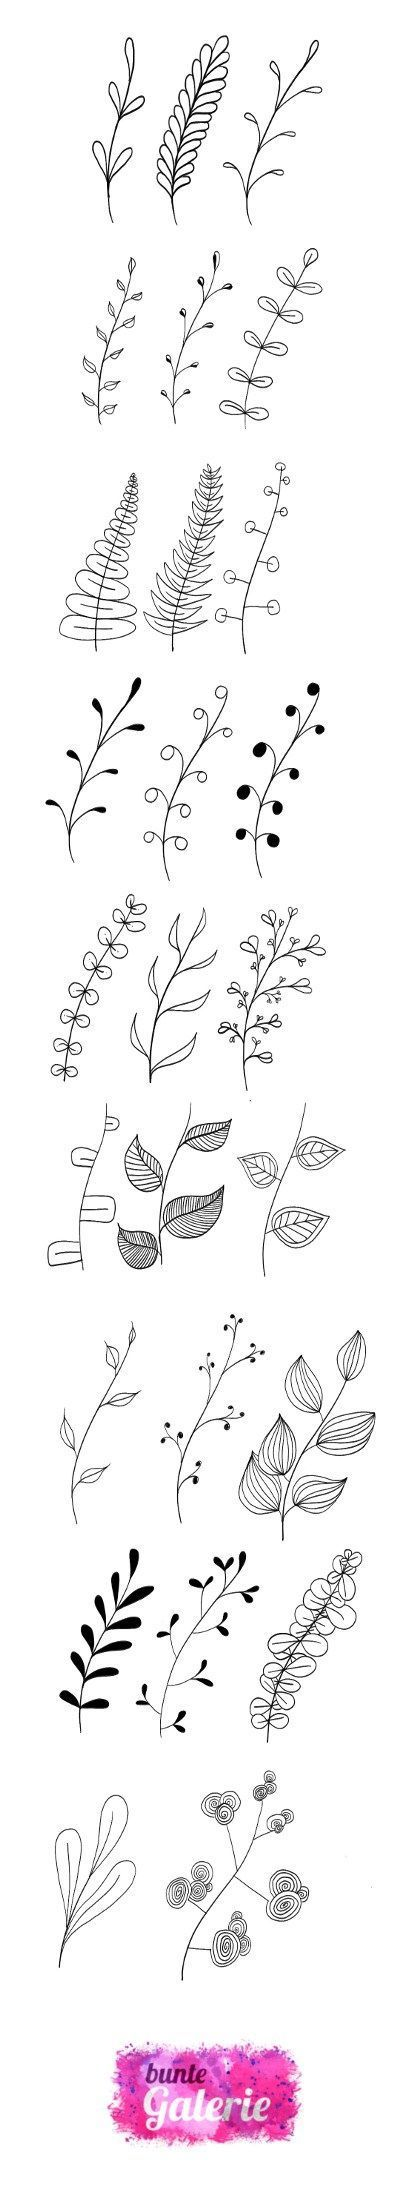 Embroidery Pattern from Doodle Florale Elemente für Lettering oder Zentangle. jwt